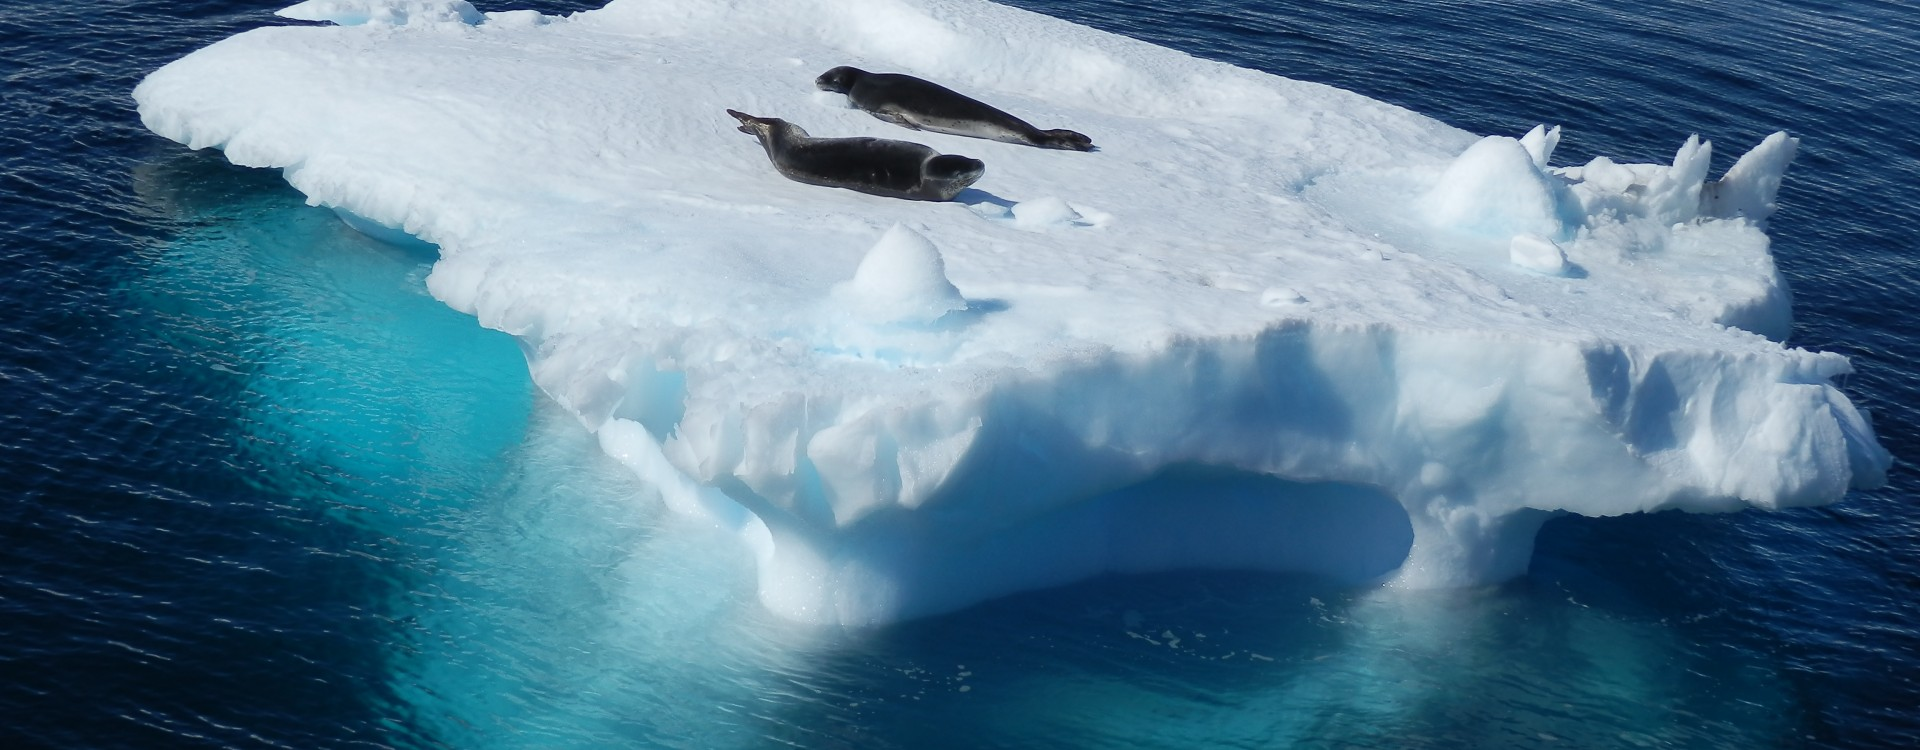 Antarctic Cruise